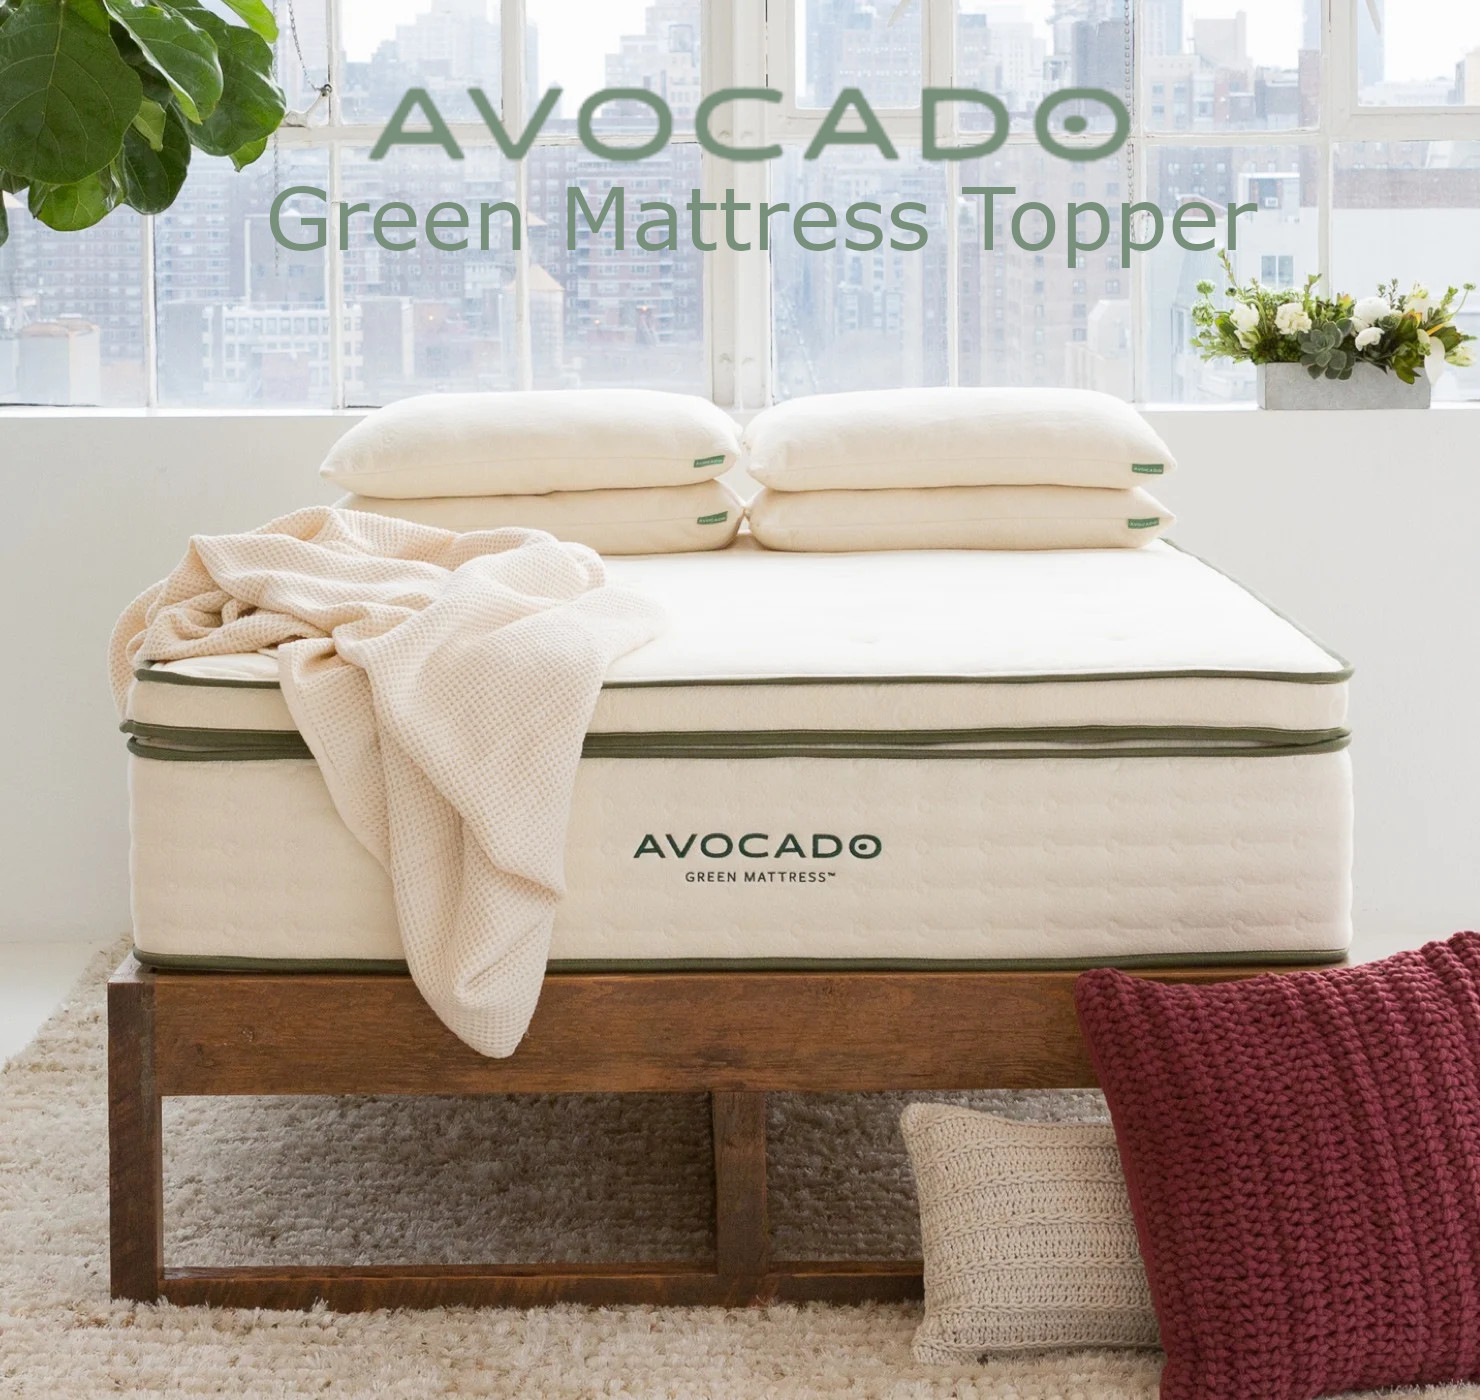 avocado green mattress topper